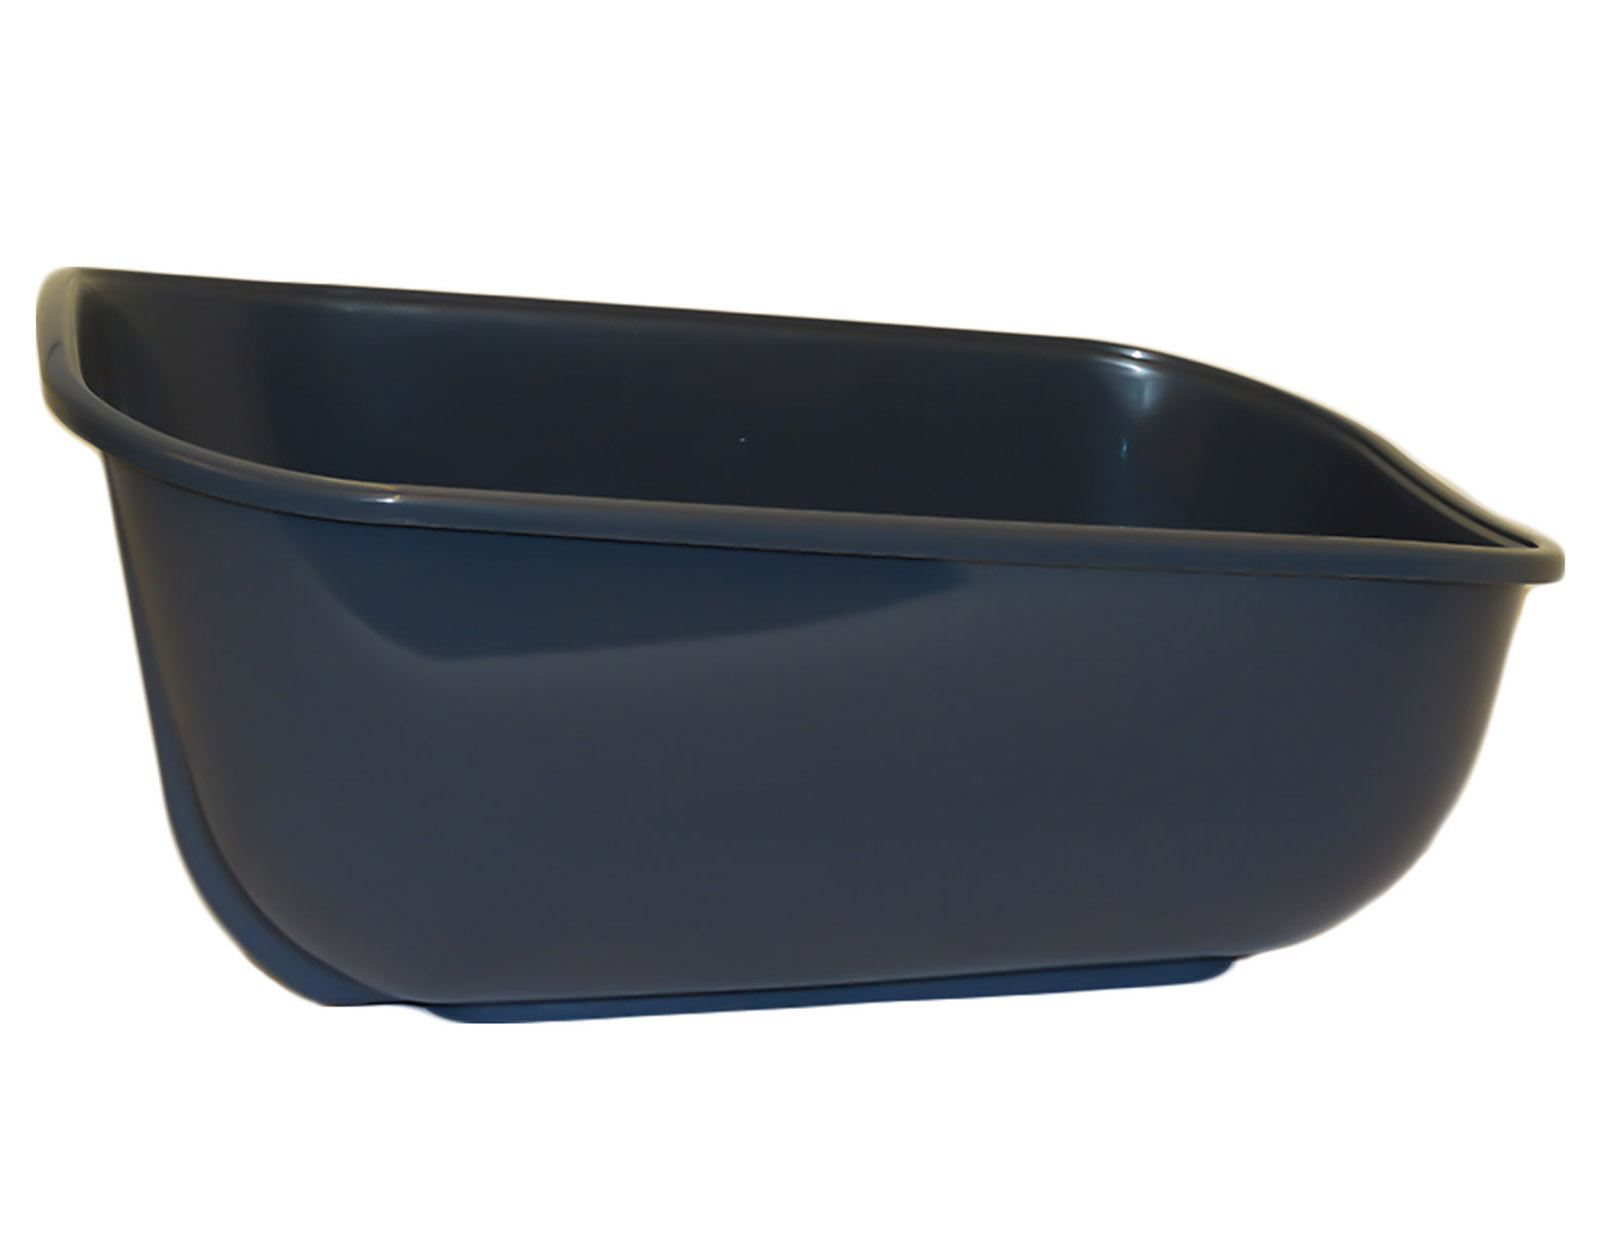 Extra Deep Large Cat Litter Tray Dark Grey Box Pan Toilet Loo High Sided 7426828477184 Ebay